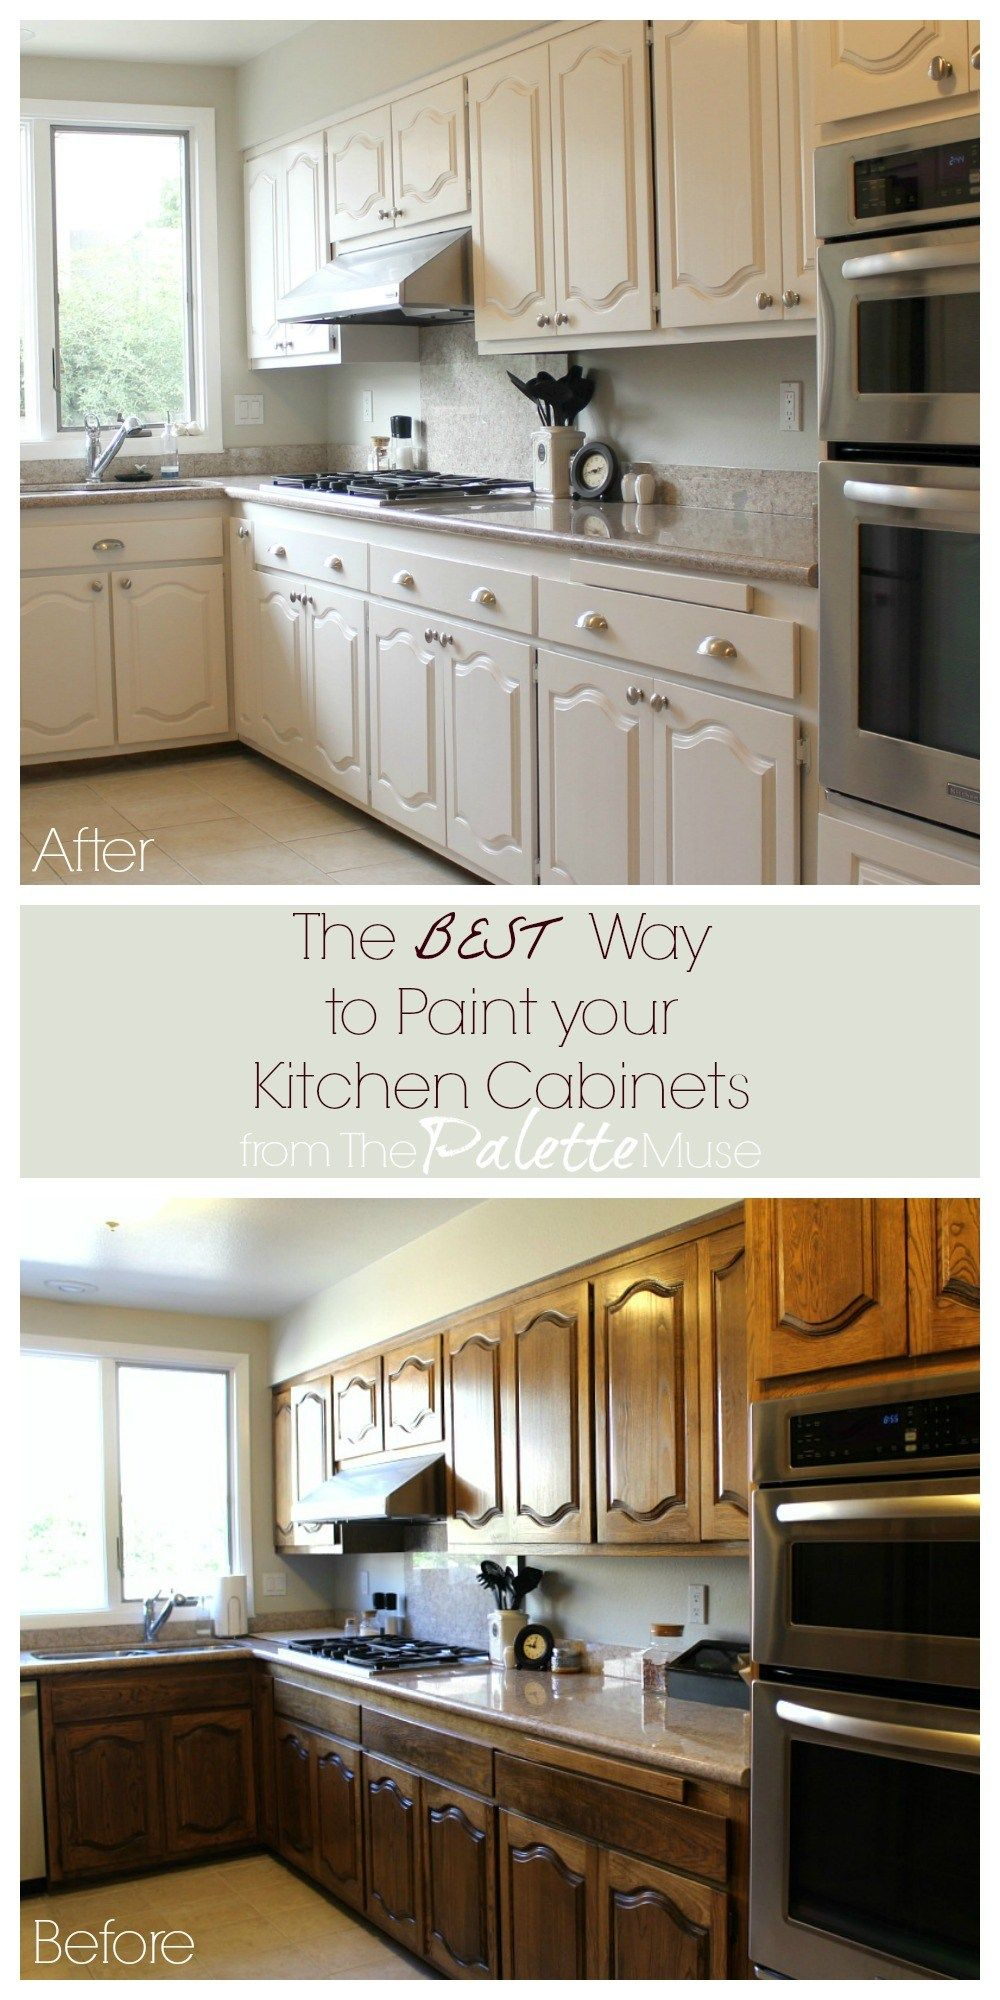 The Best Way to Paint Kitchen Cabinets (No Sanding | New ...